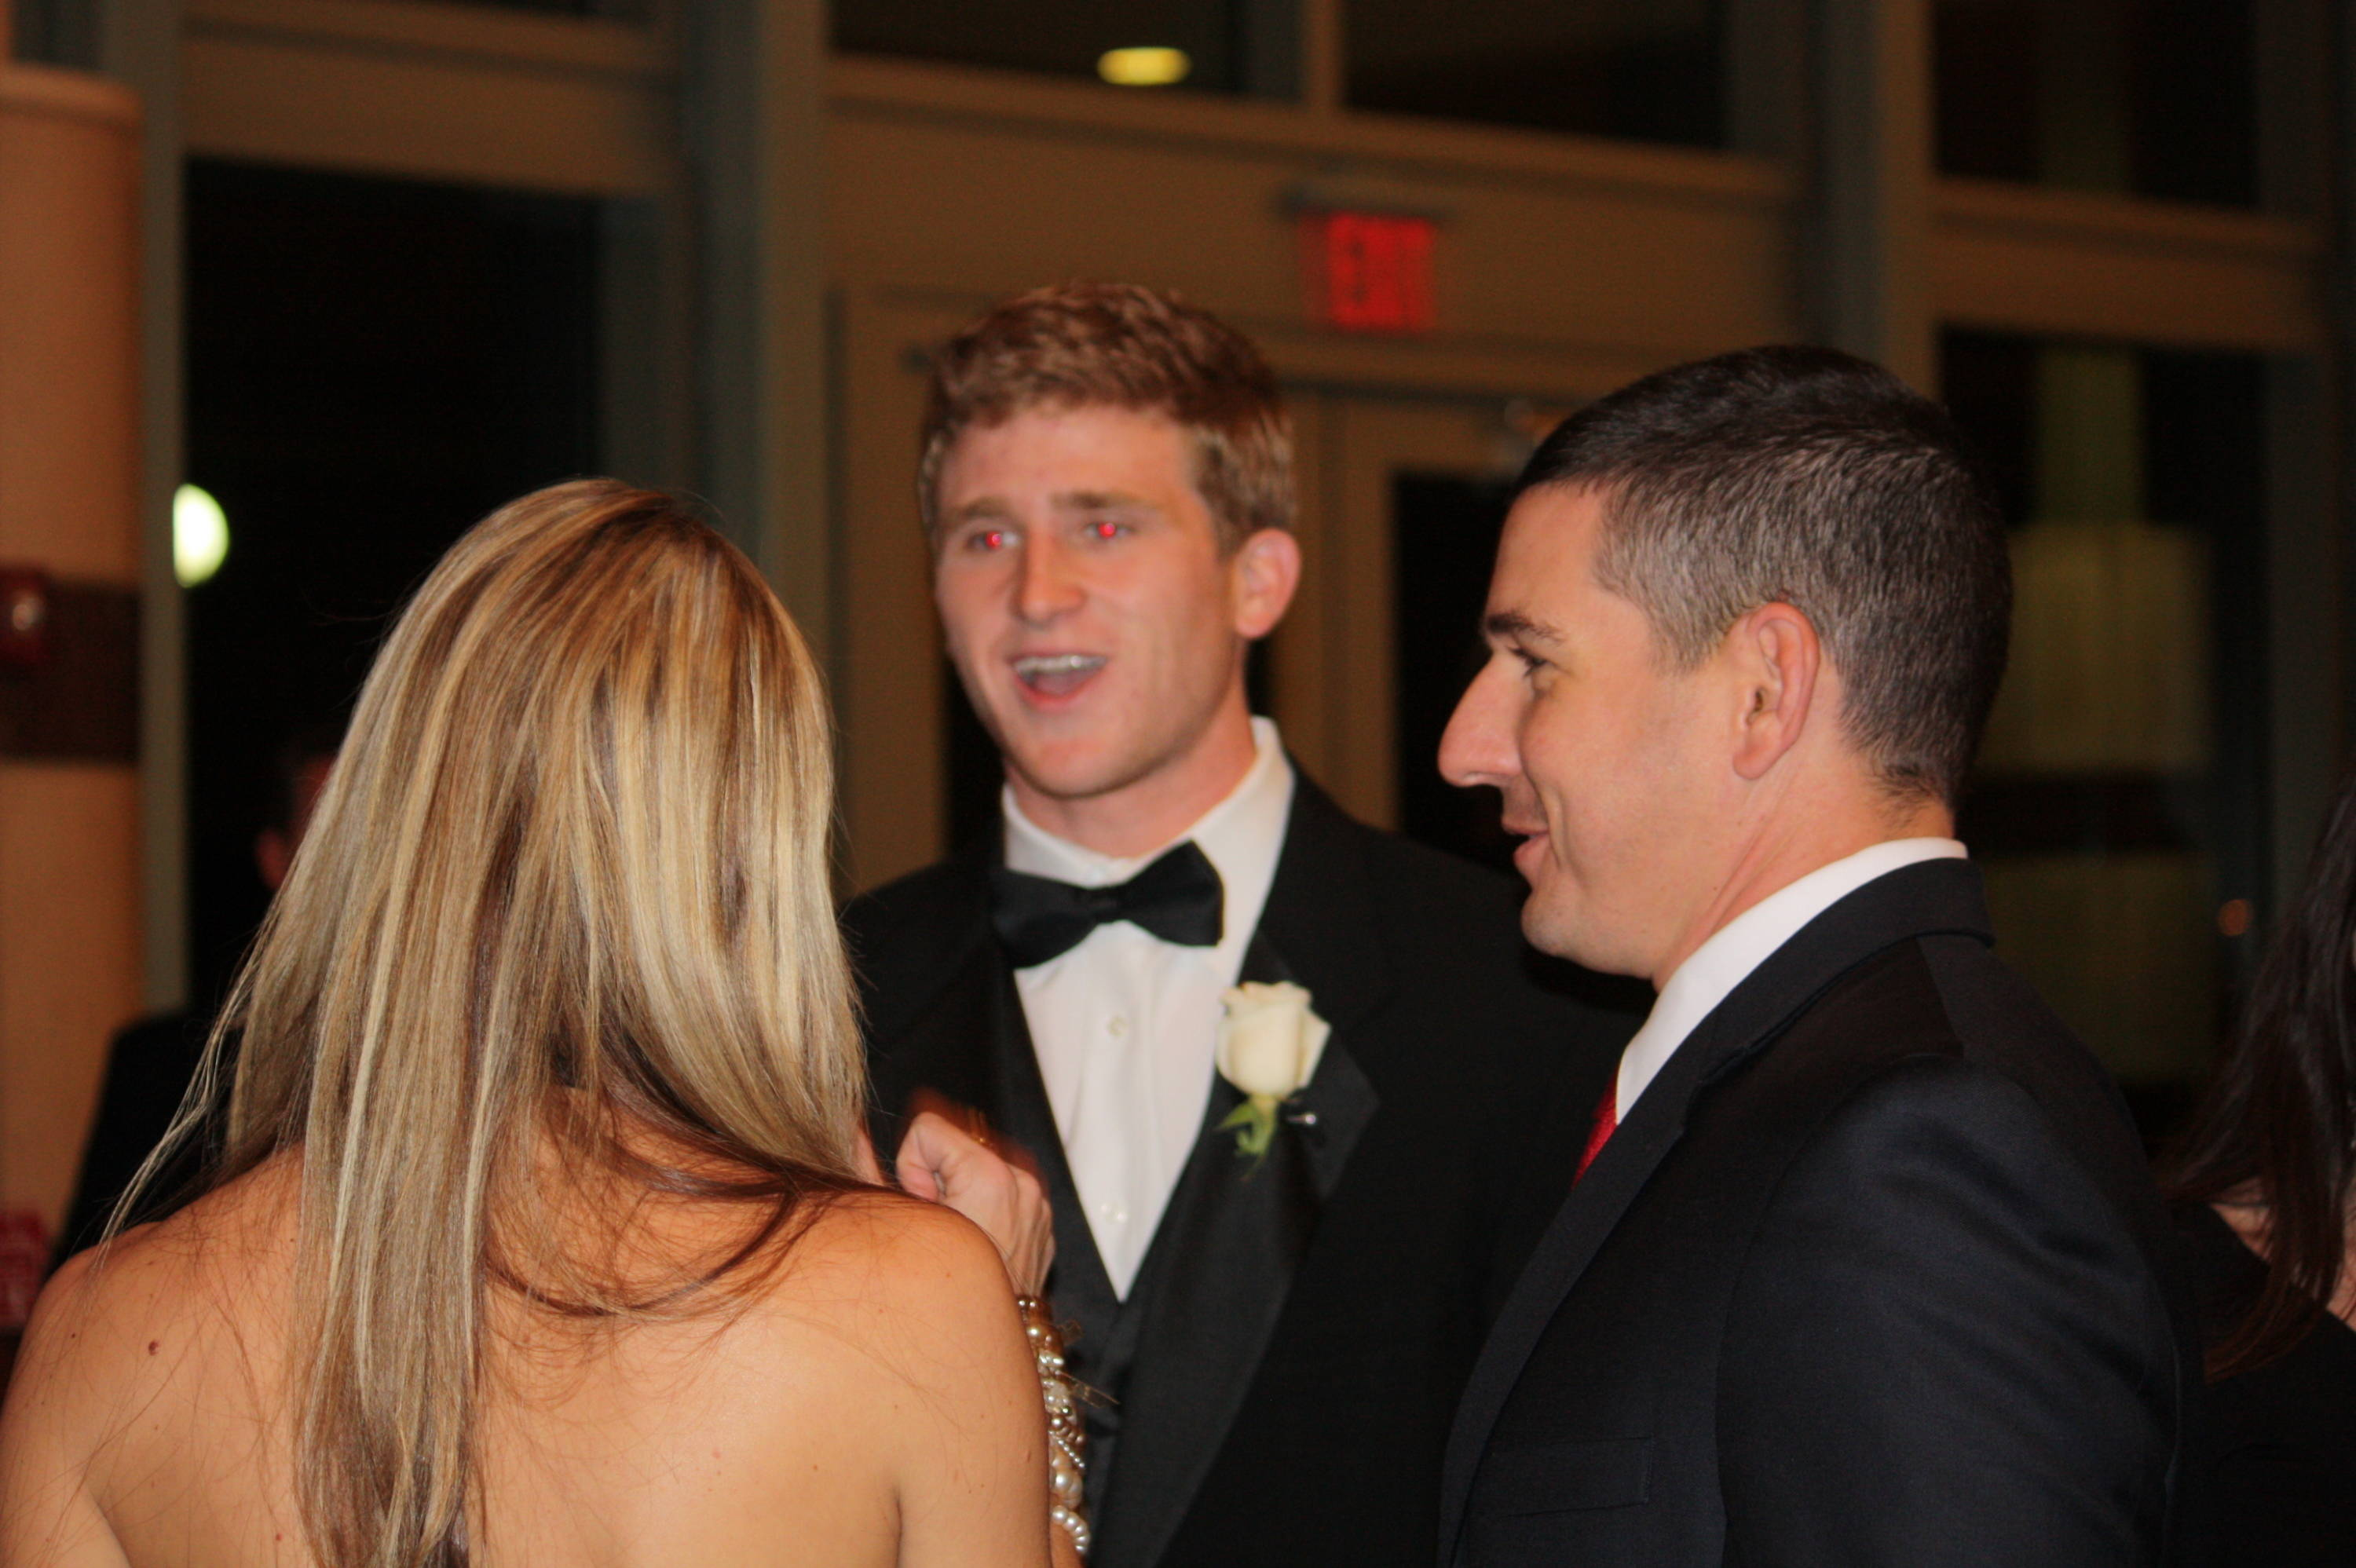 Tuesday night's Black Tie affair gave Hopkins and others a chance to mingle with fans and supporters.